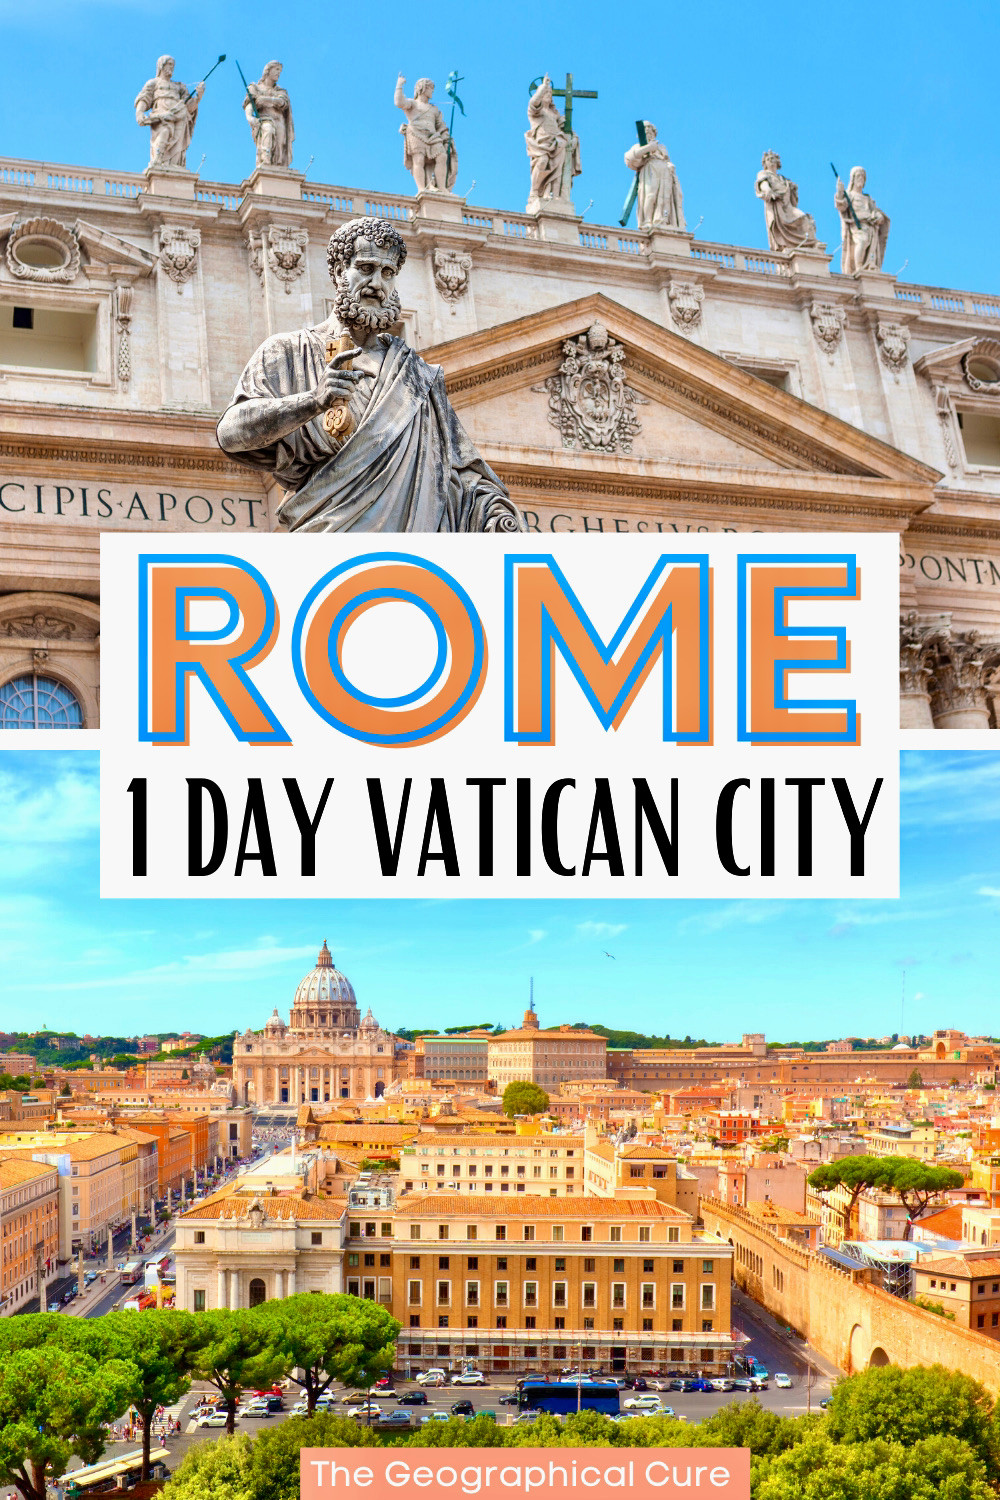 one day itinerary for visiting Vatican City